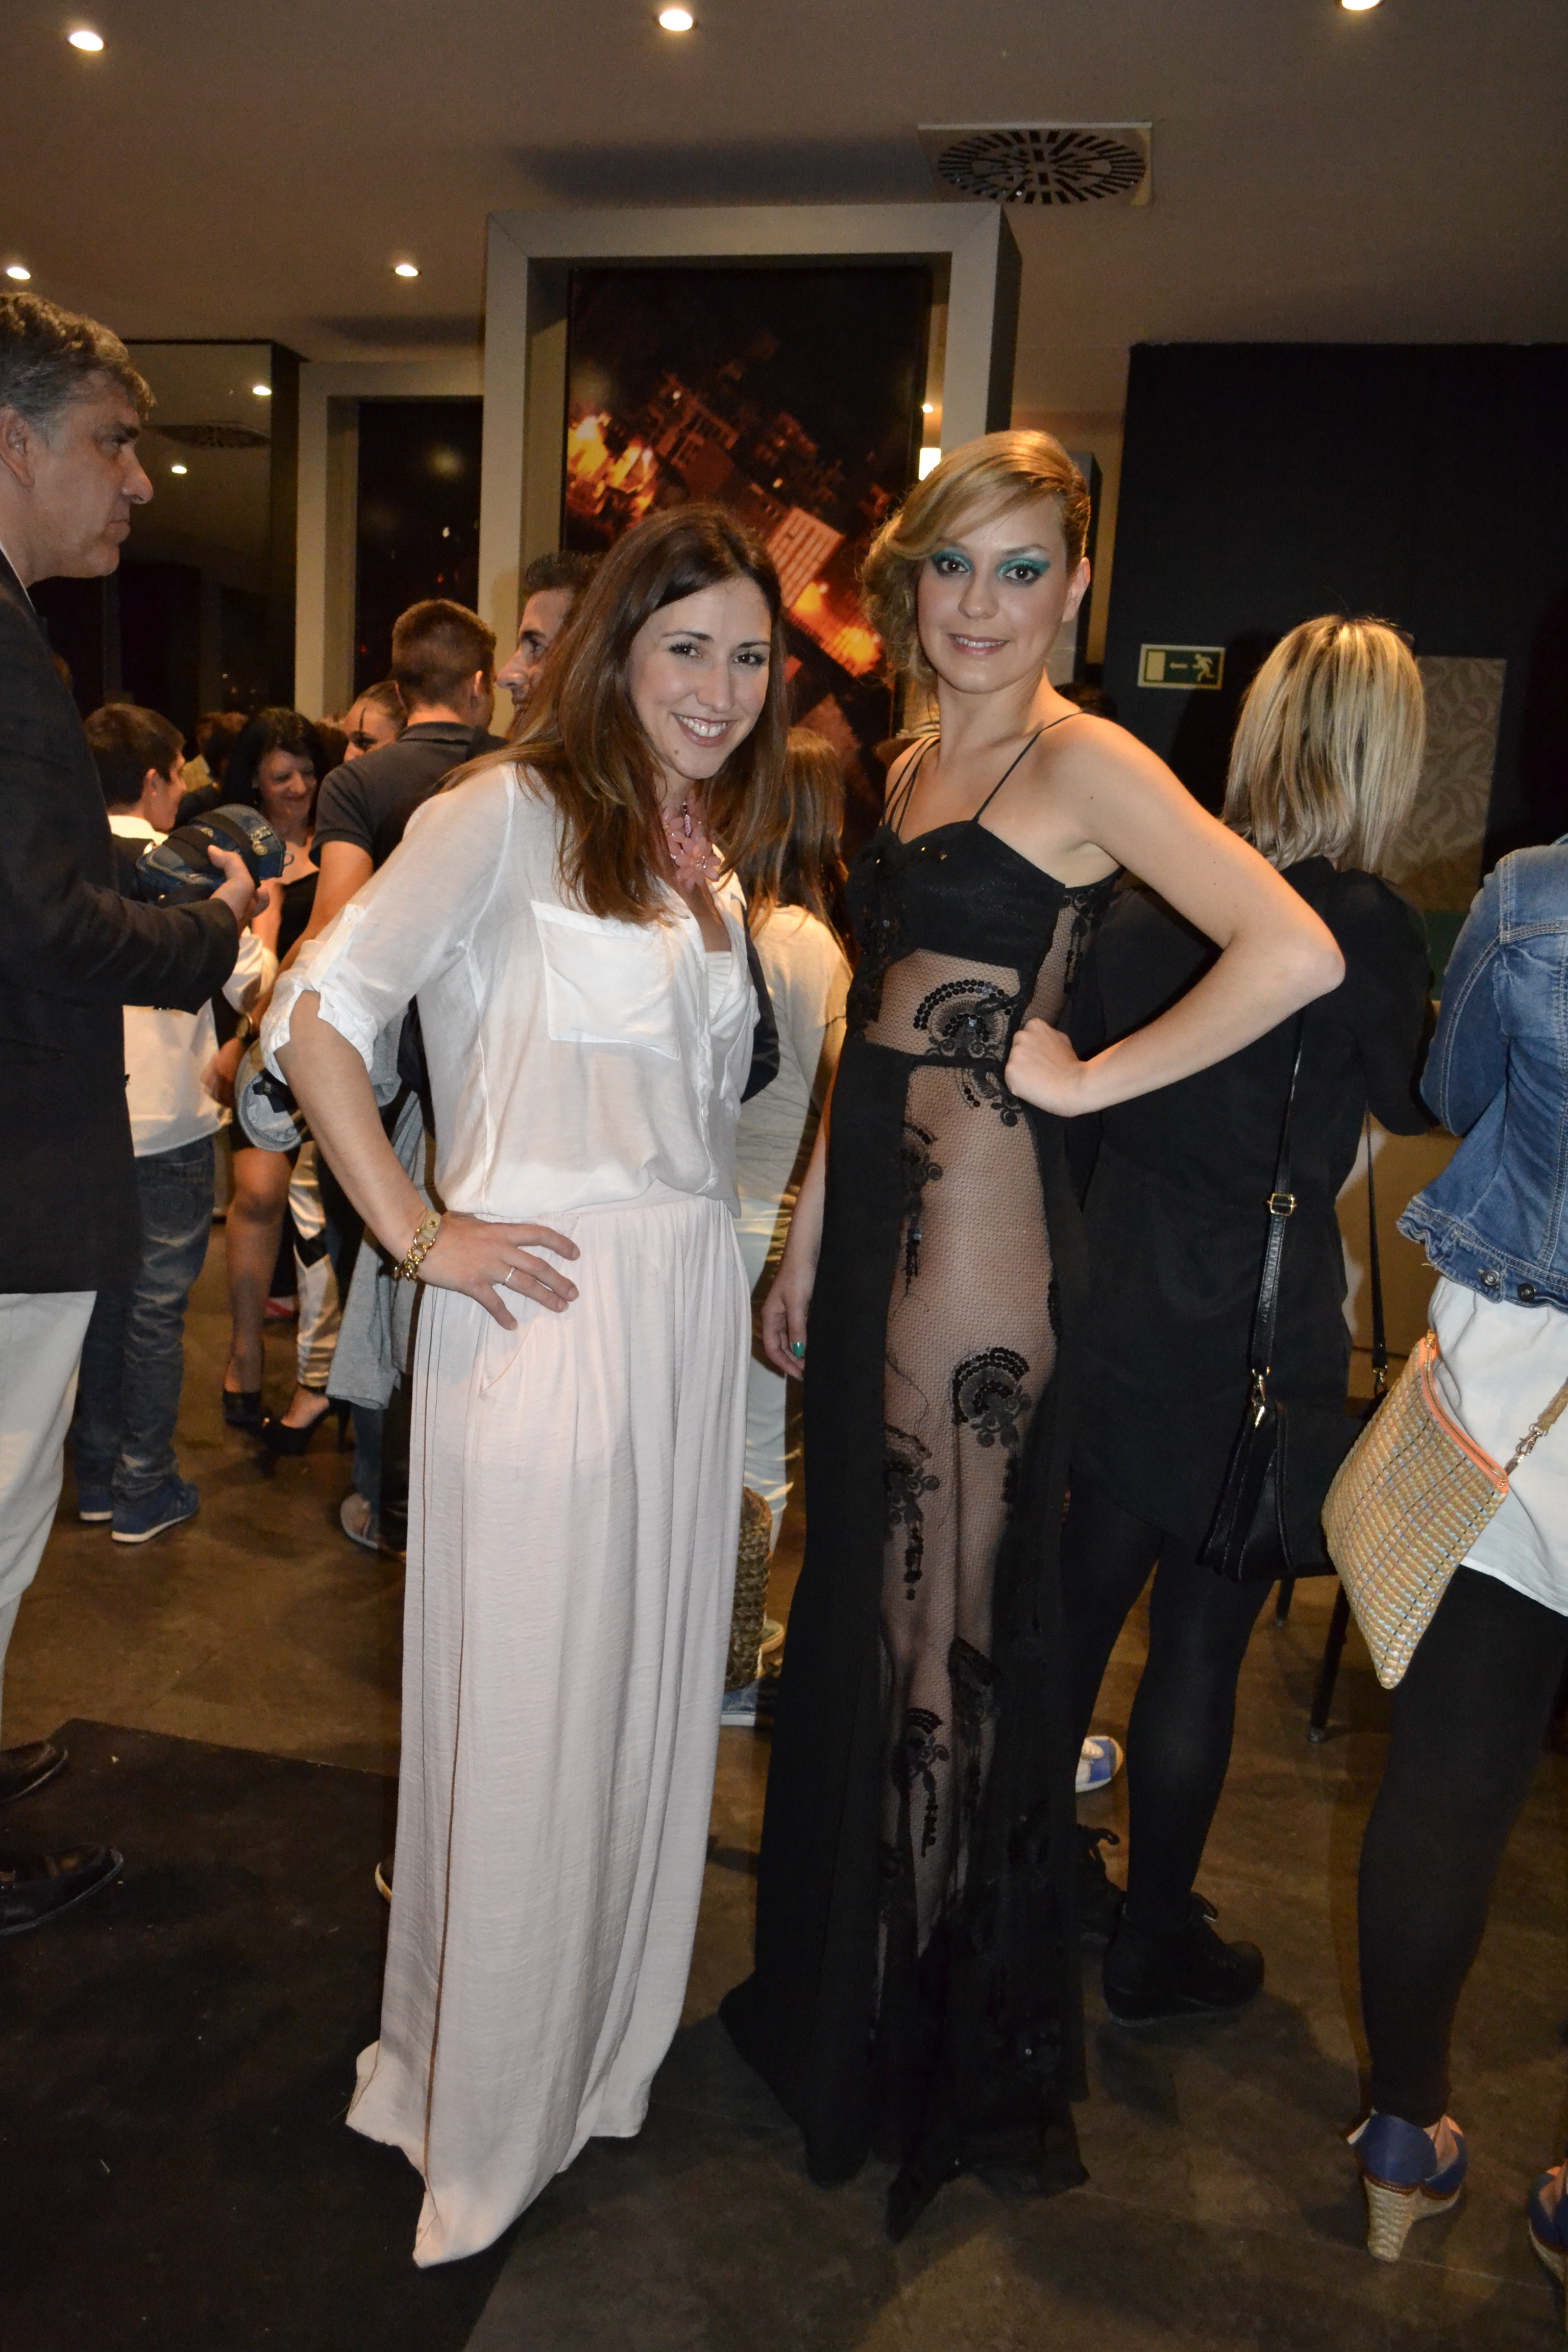 Moda_Nova_Events_Blogtiful_AlcoyXIV